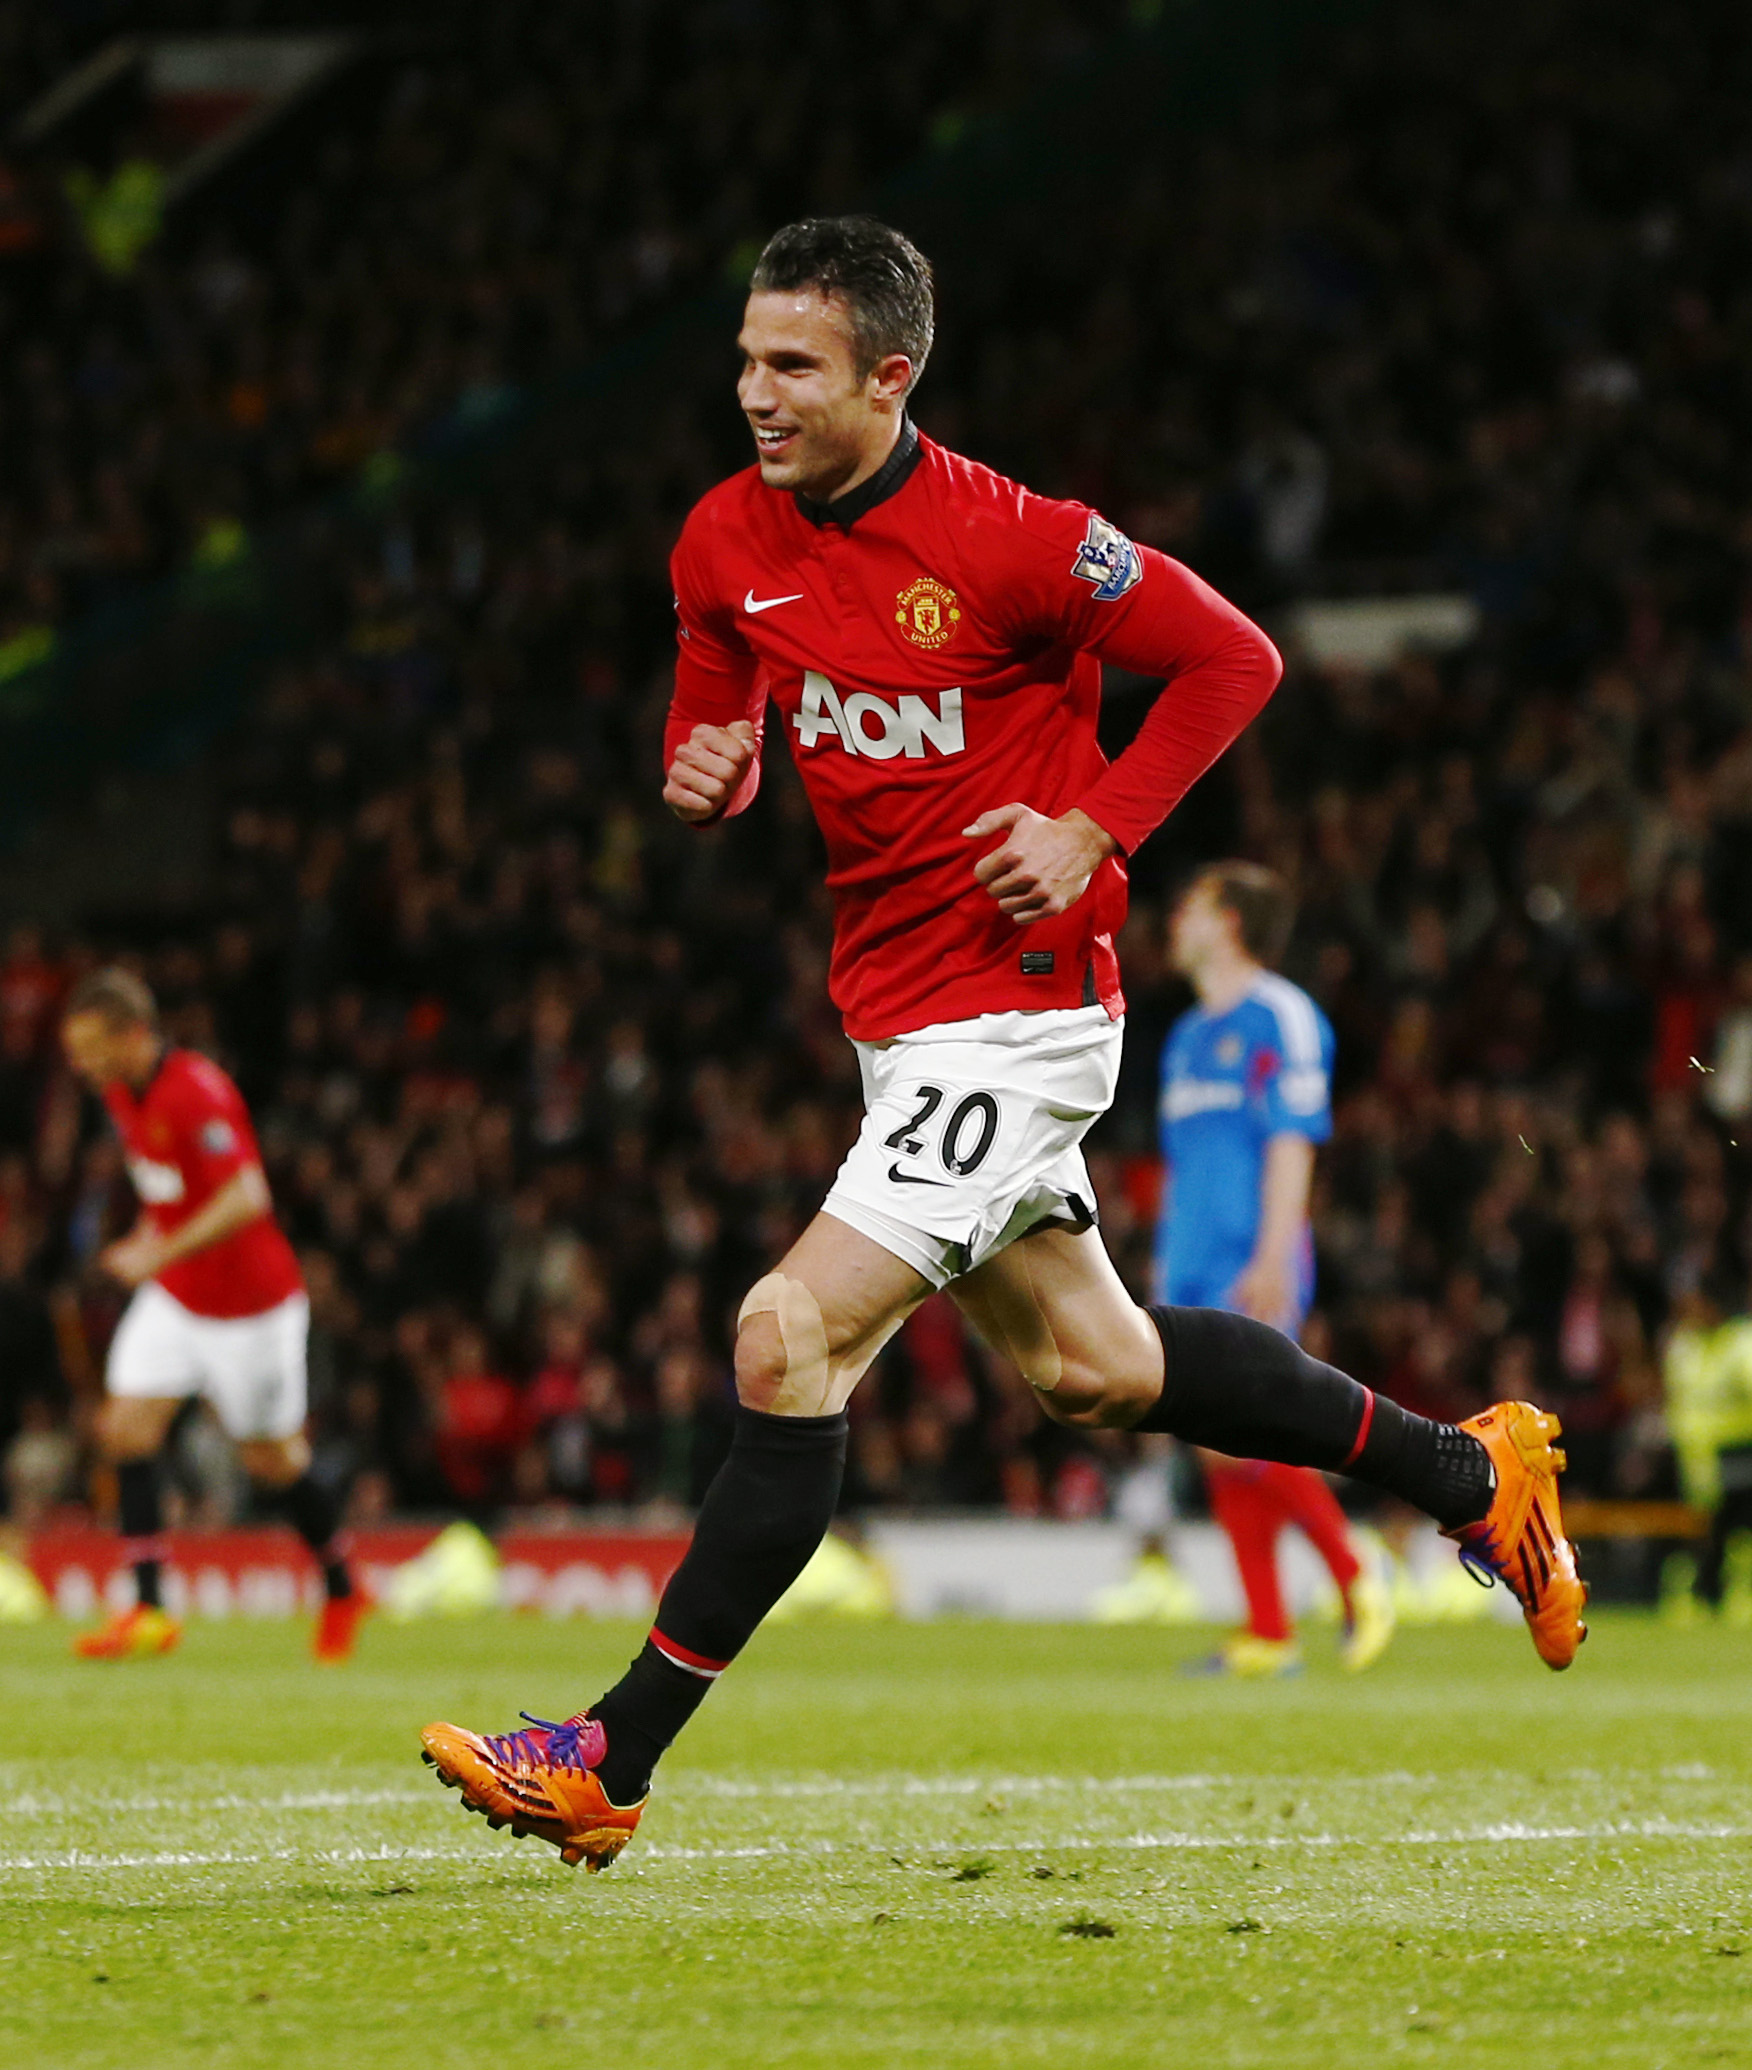 → Robin van Persie was the most expensive FPL asset when the game relaunched in the summer of 2013. What was his astronomical starting price?